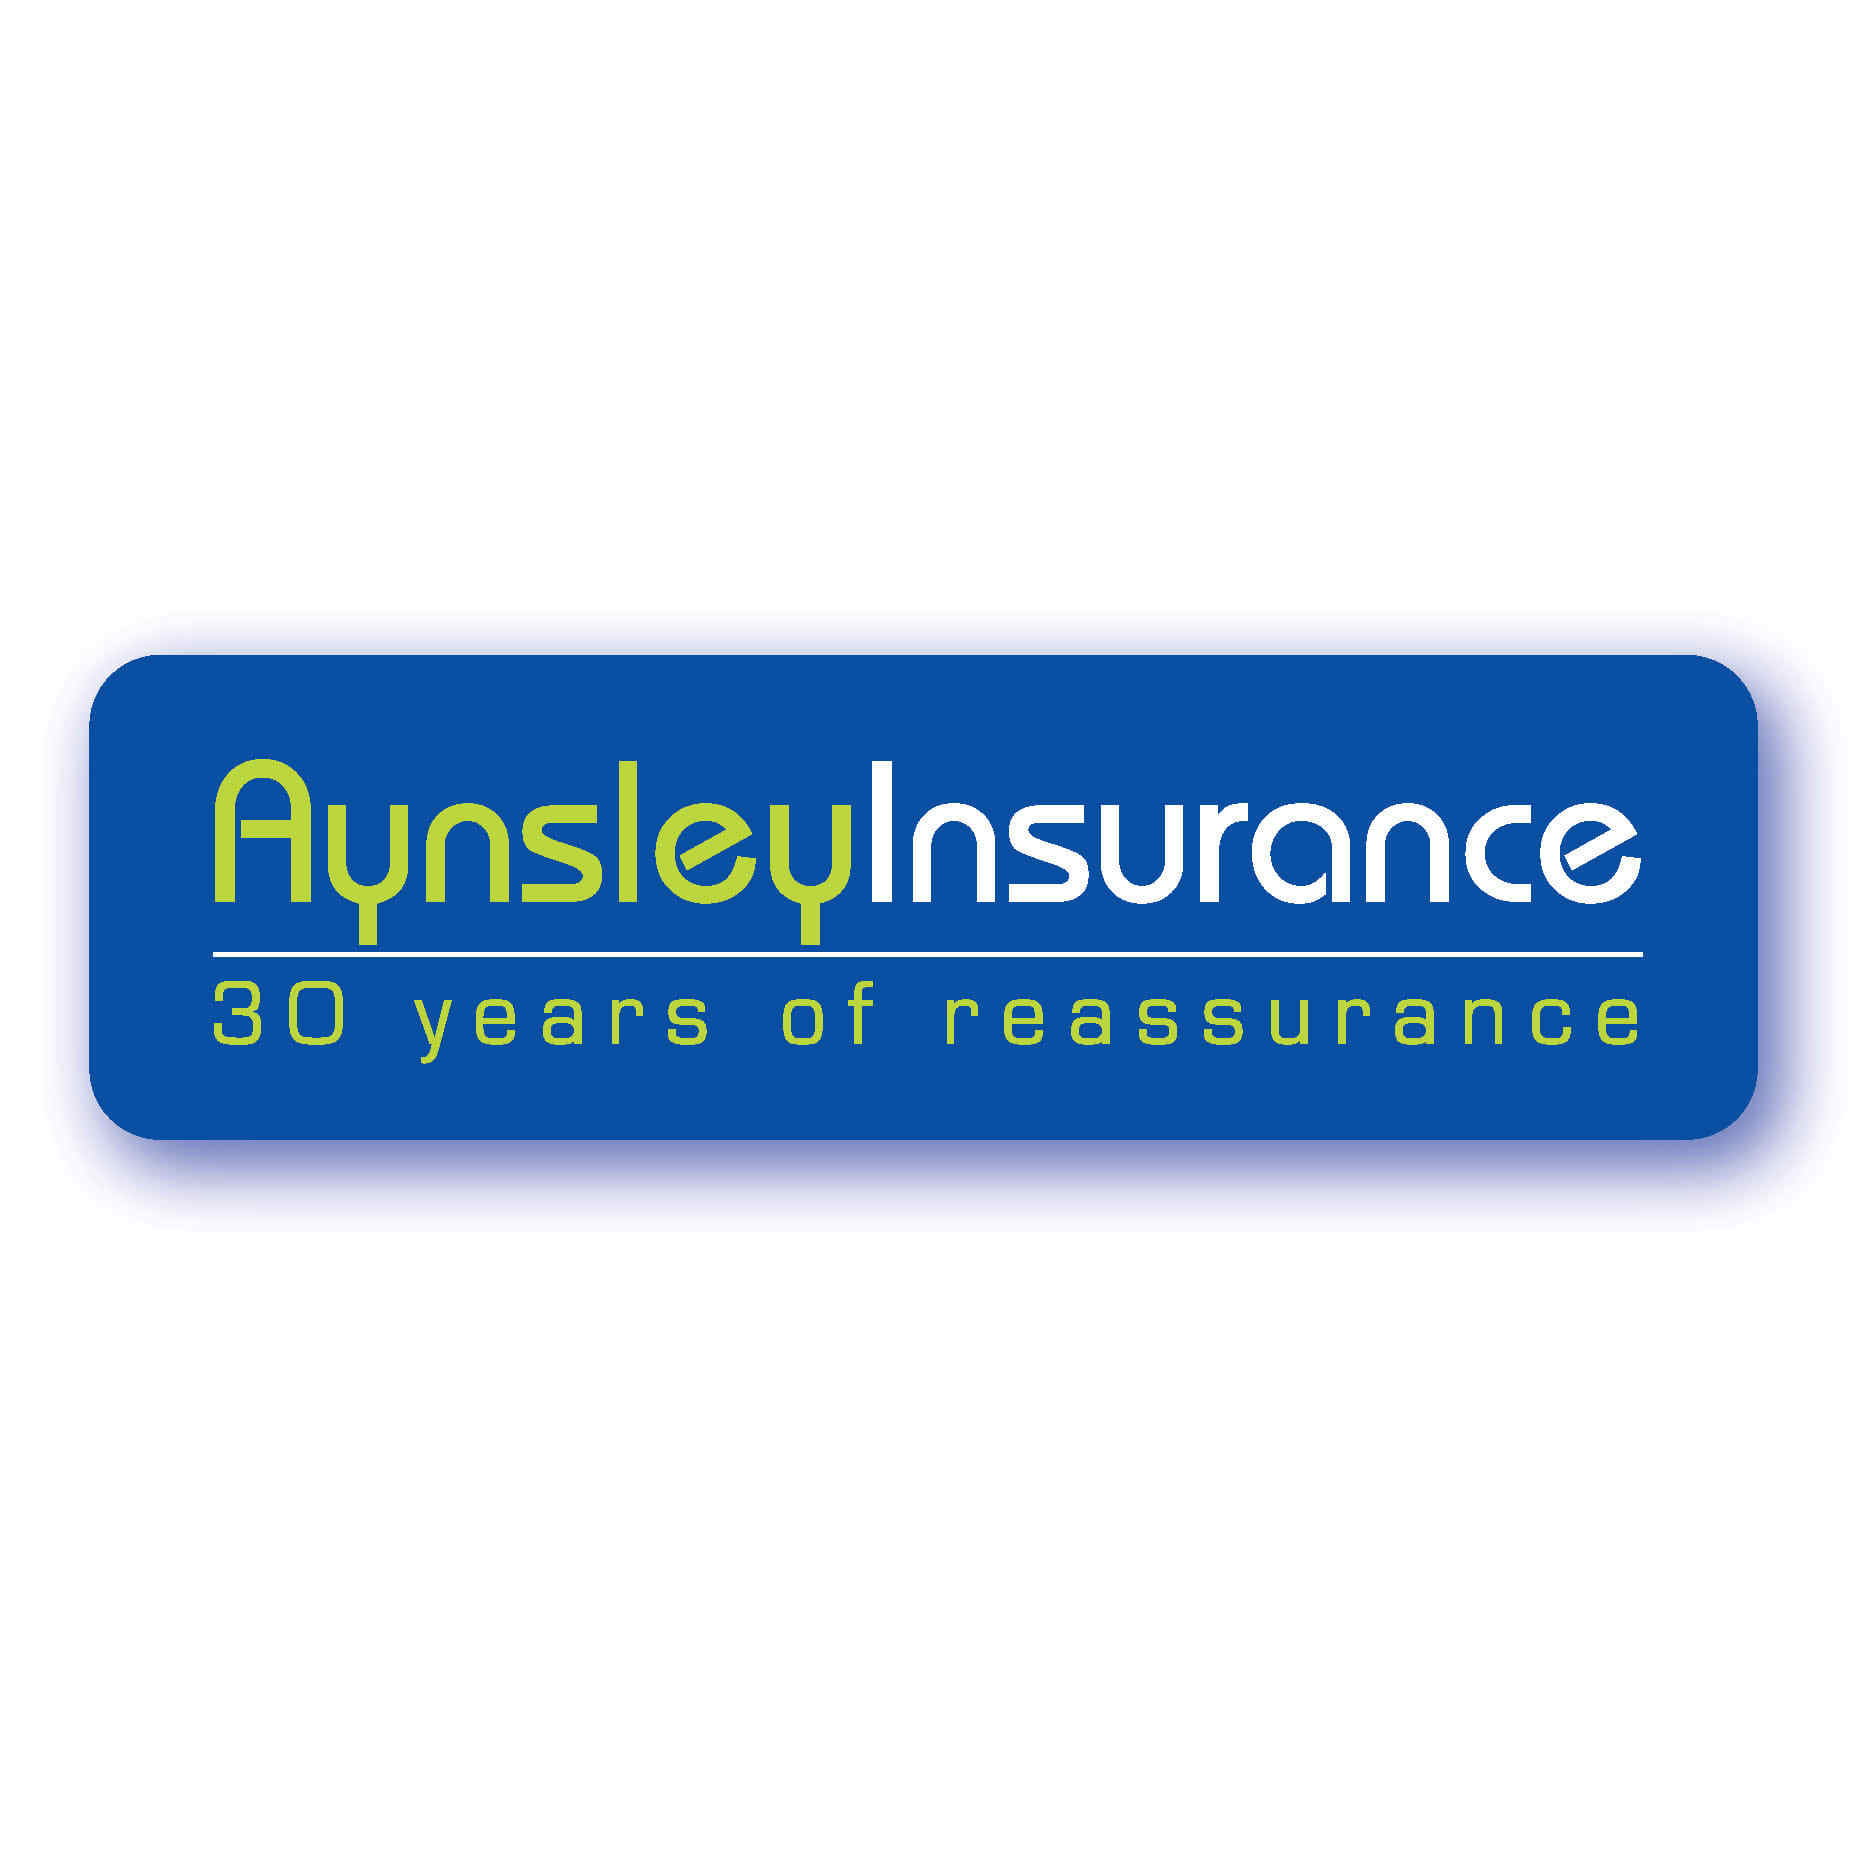 Aynsley Insurance Brokers - Stoke-On-Trent, Staffordshire ST1 1HR - 01782 265522 | ShowMeLocal.com